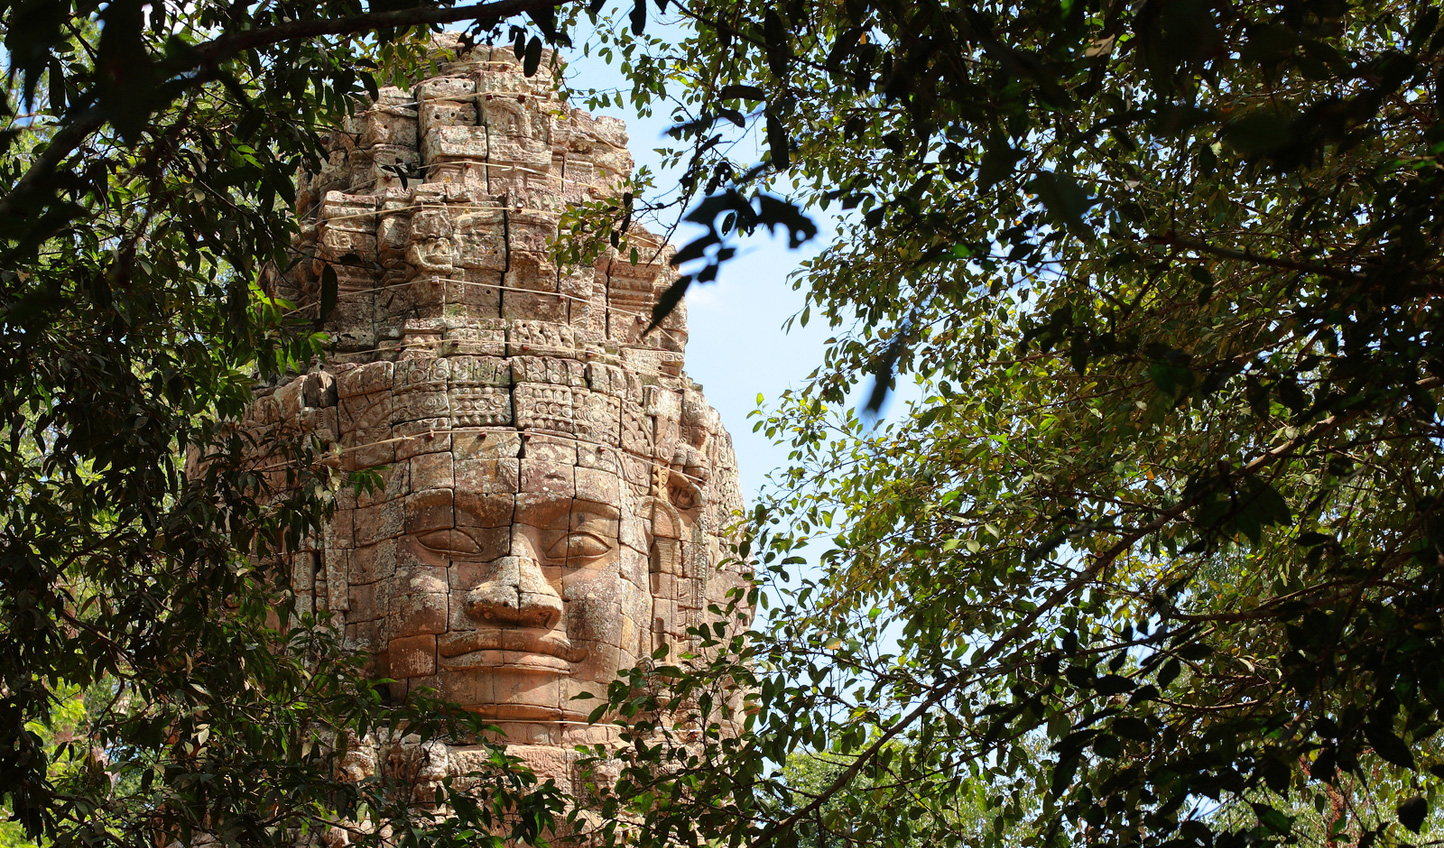 Discover lost civilizations at Ta Prohm